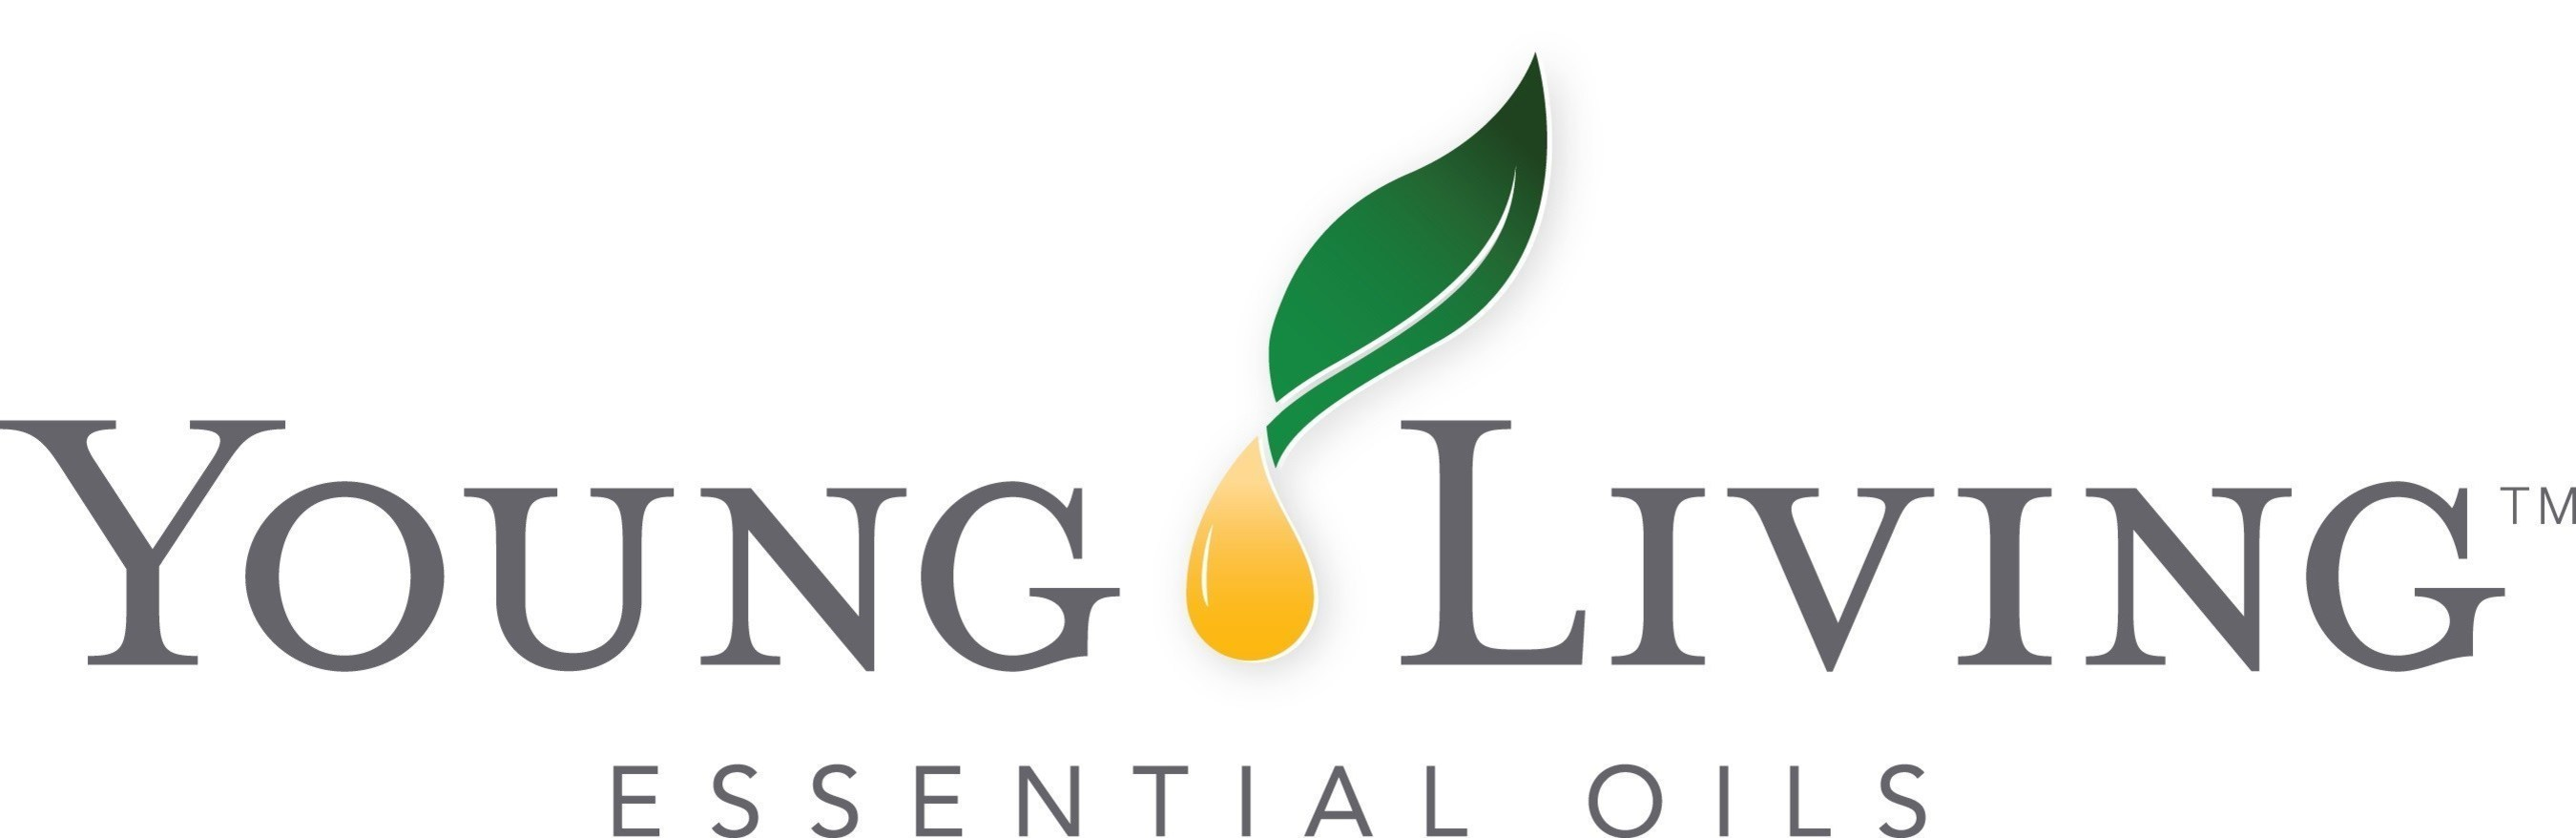 Young Living beruft neuen Chief Operating Officer